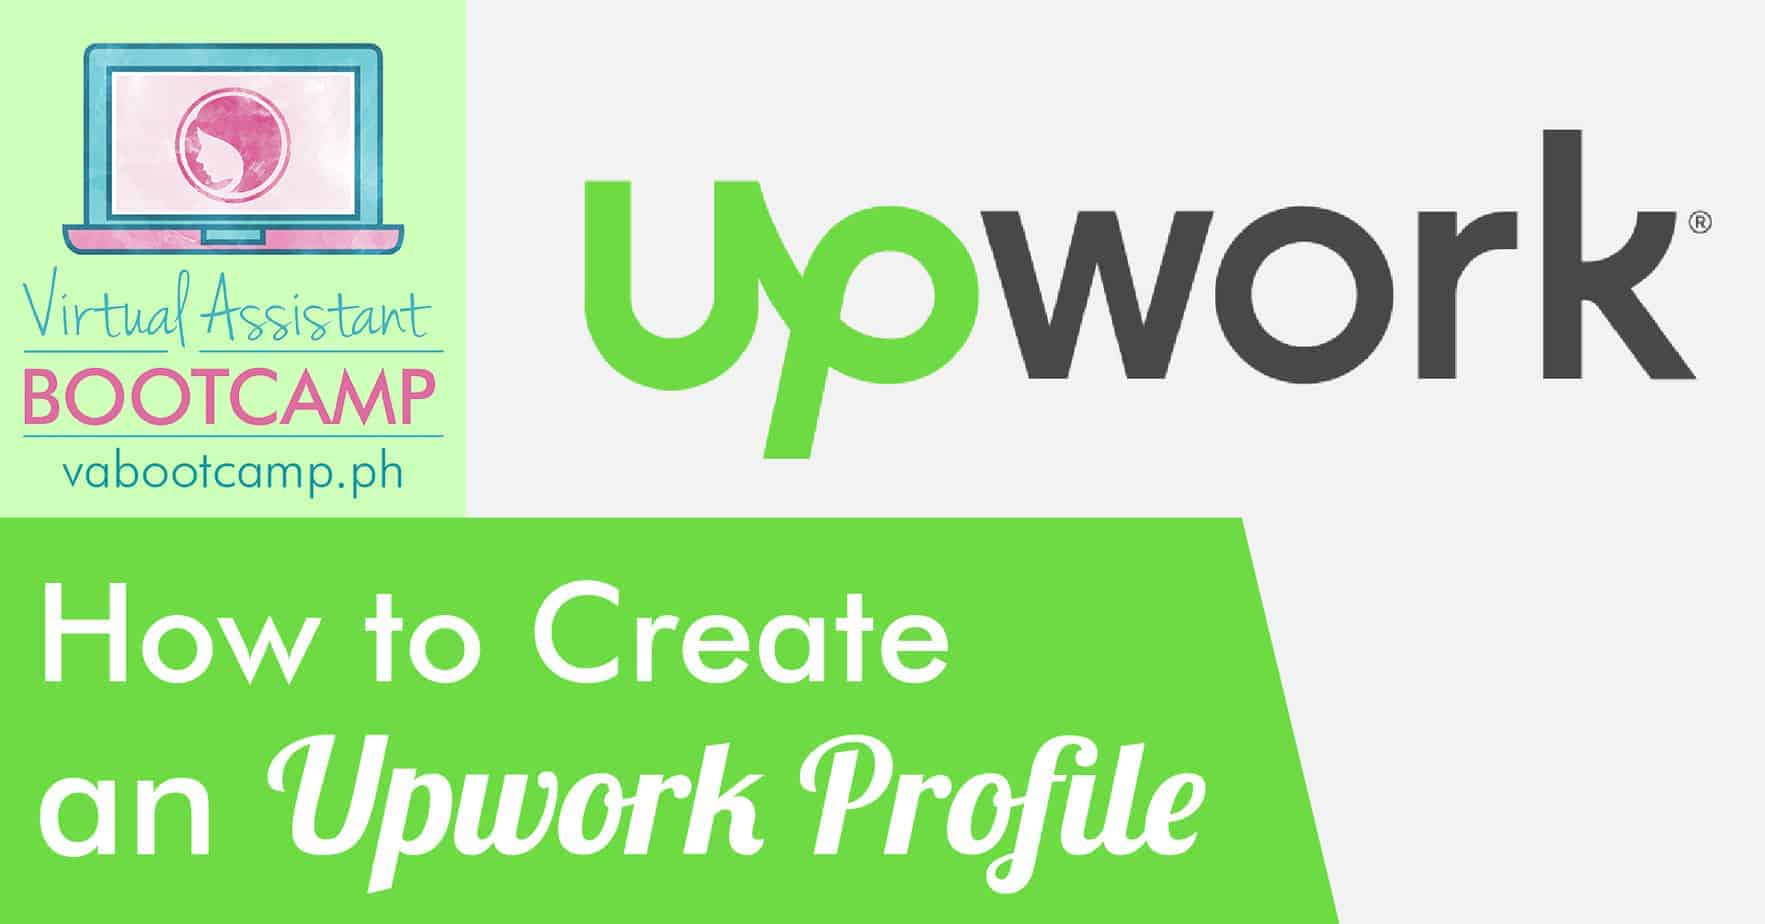 Forum on this topic: How to Create an Upwork Profile, how-to-create-an-upwork-profile/